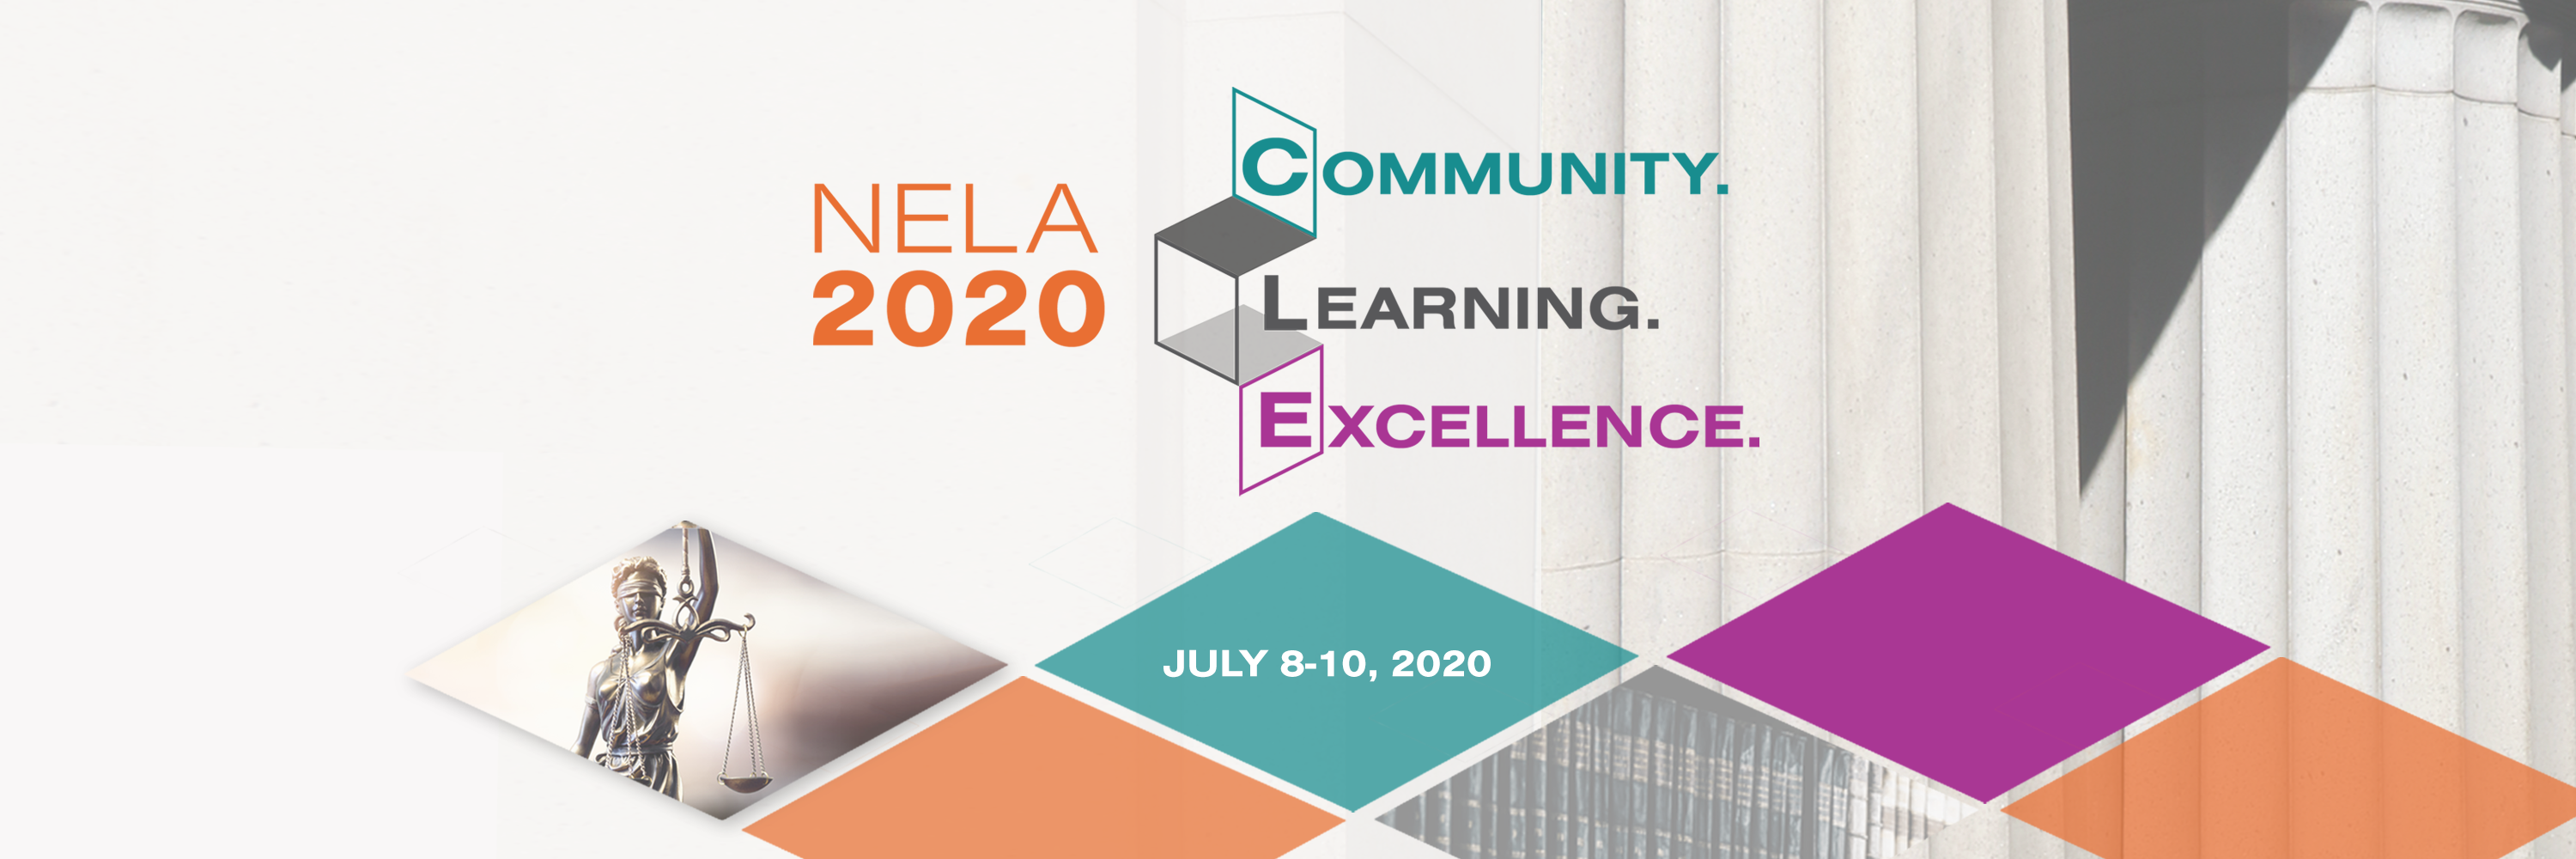 NELA 2020 Annual Convention - July 8-10, 2020